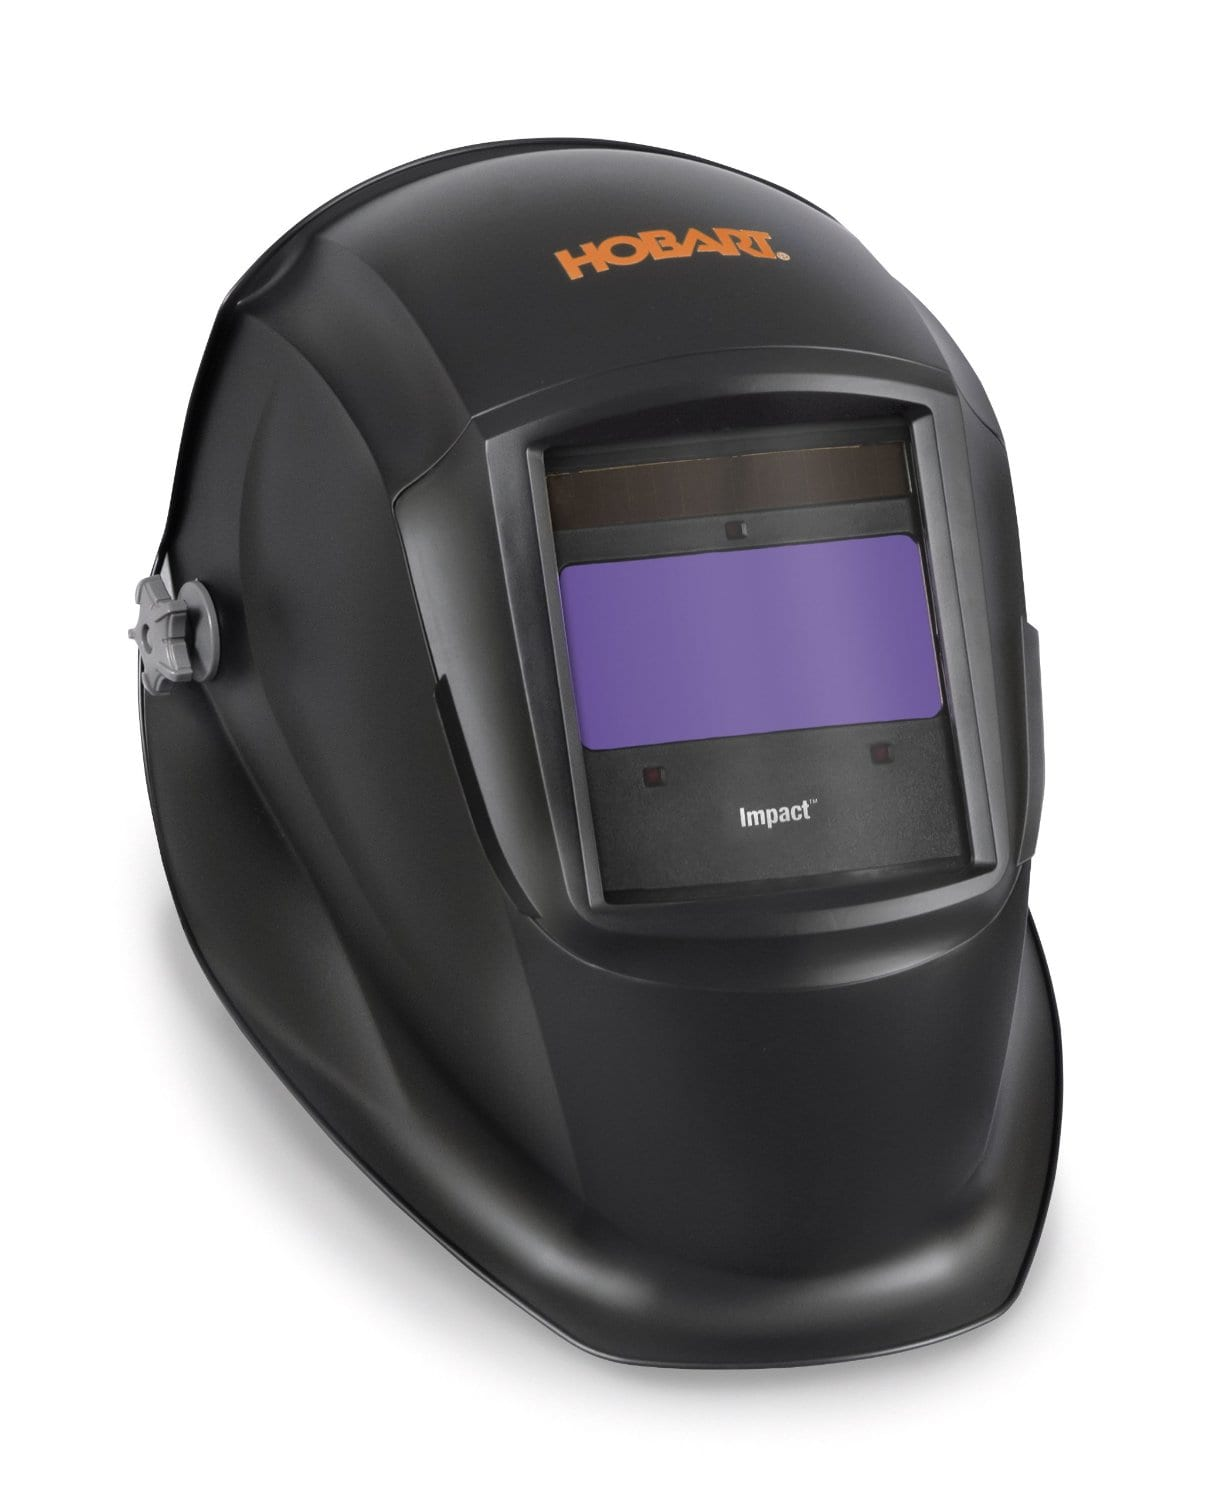 Hobart 770756 Impact Variable Auto-Dark Helmet Review